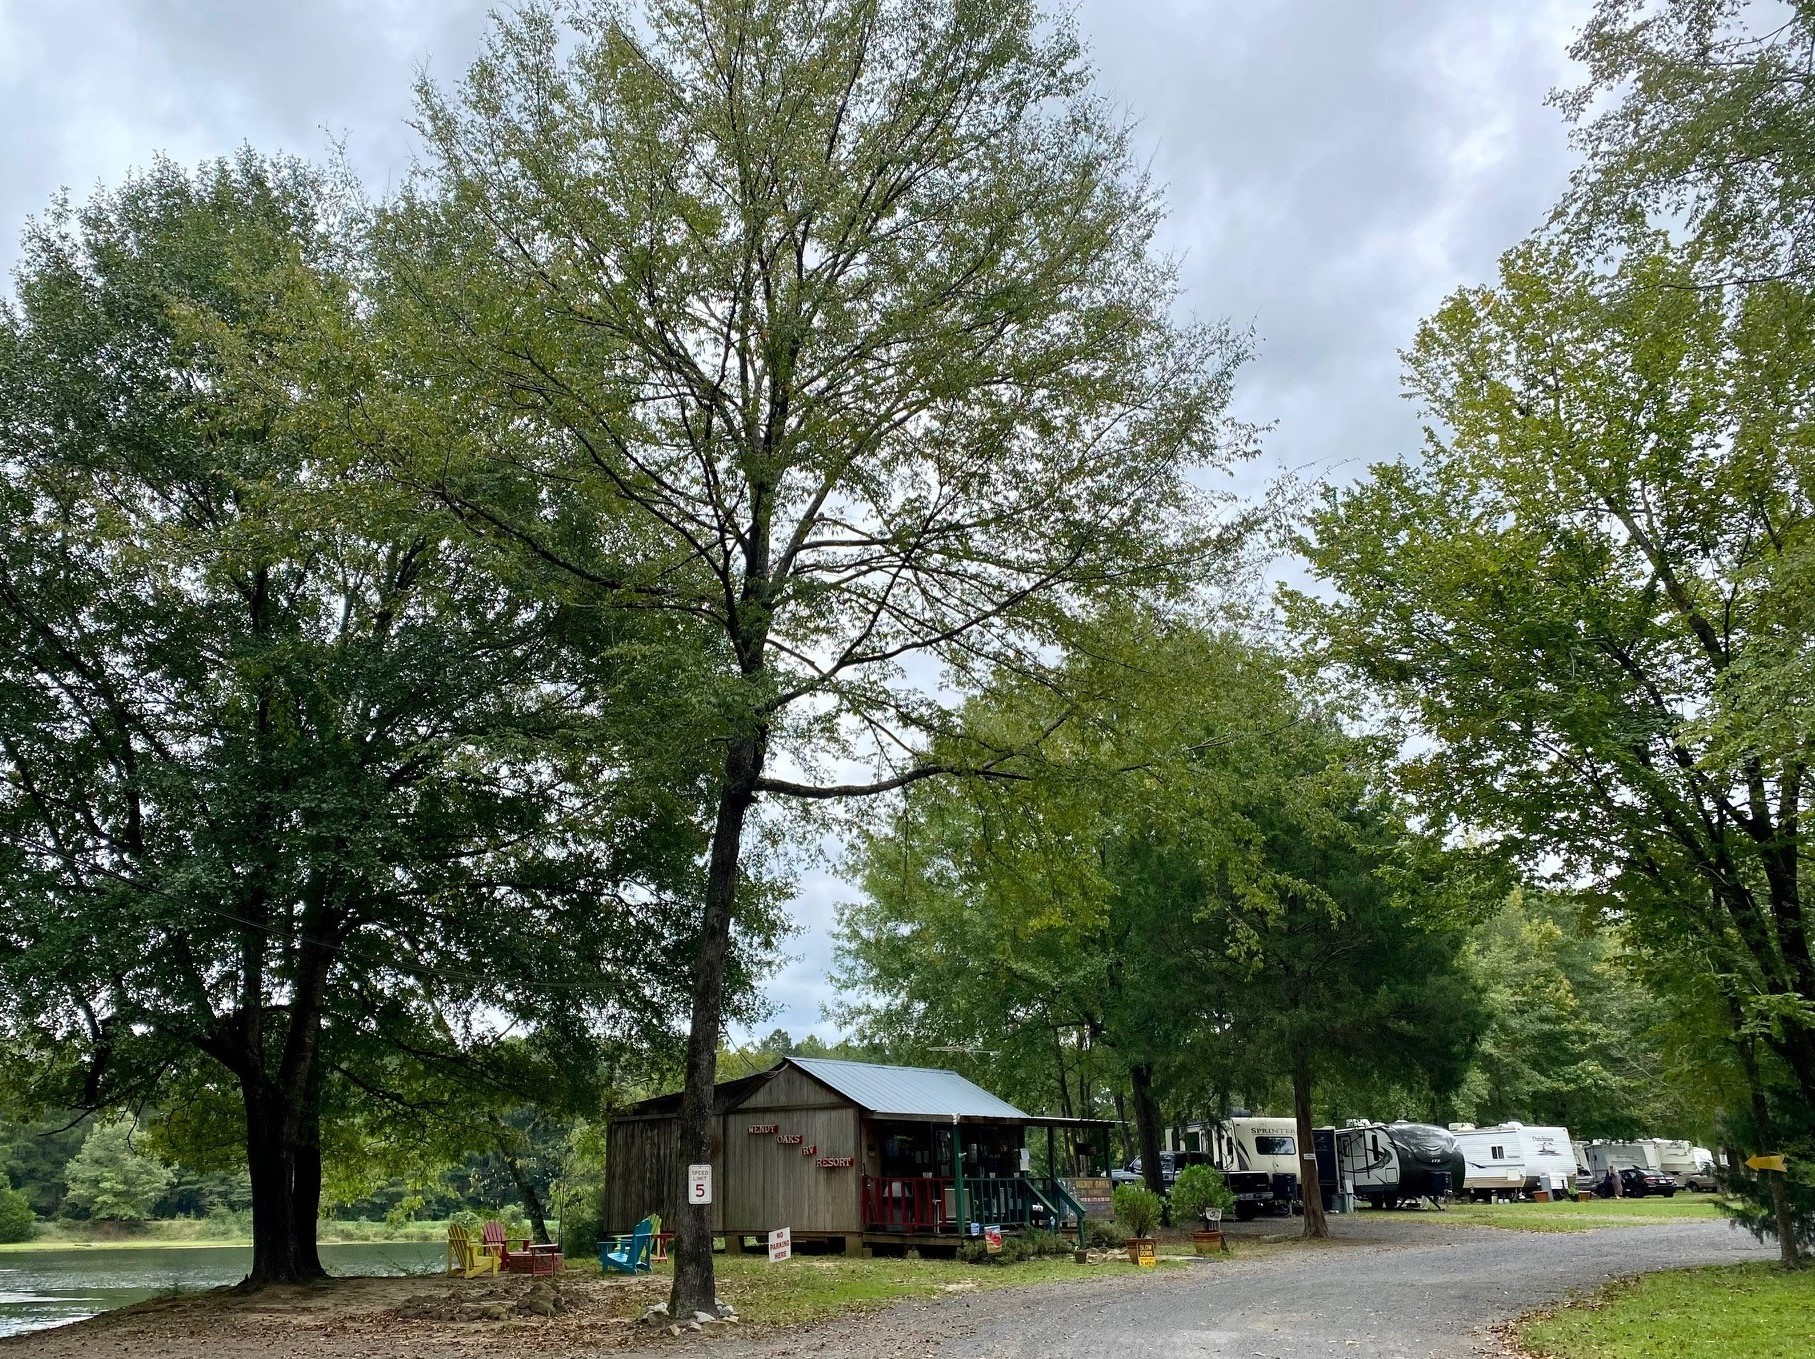 Wendy Oaks office cabin and park entrance